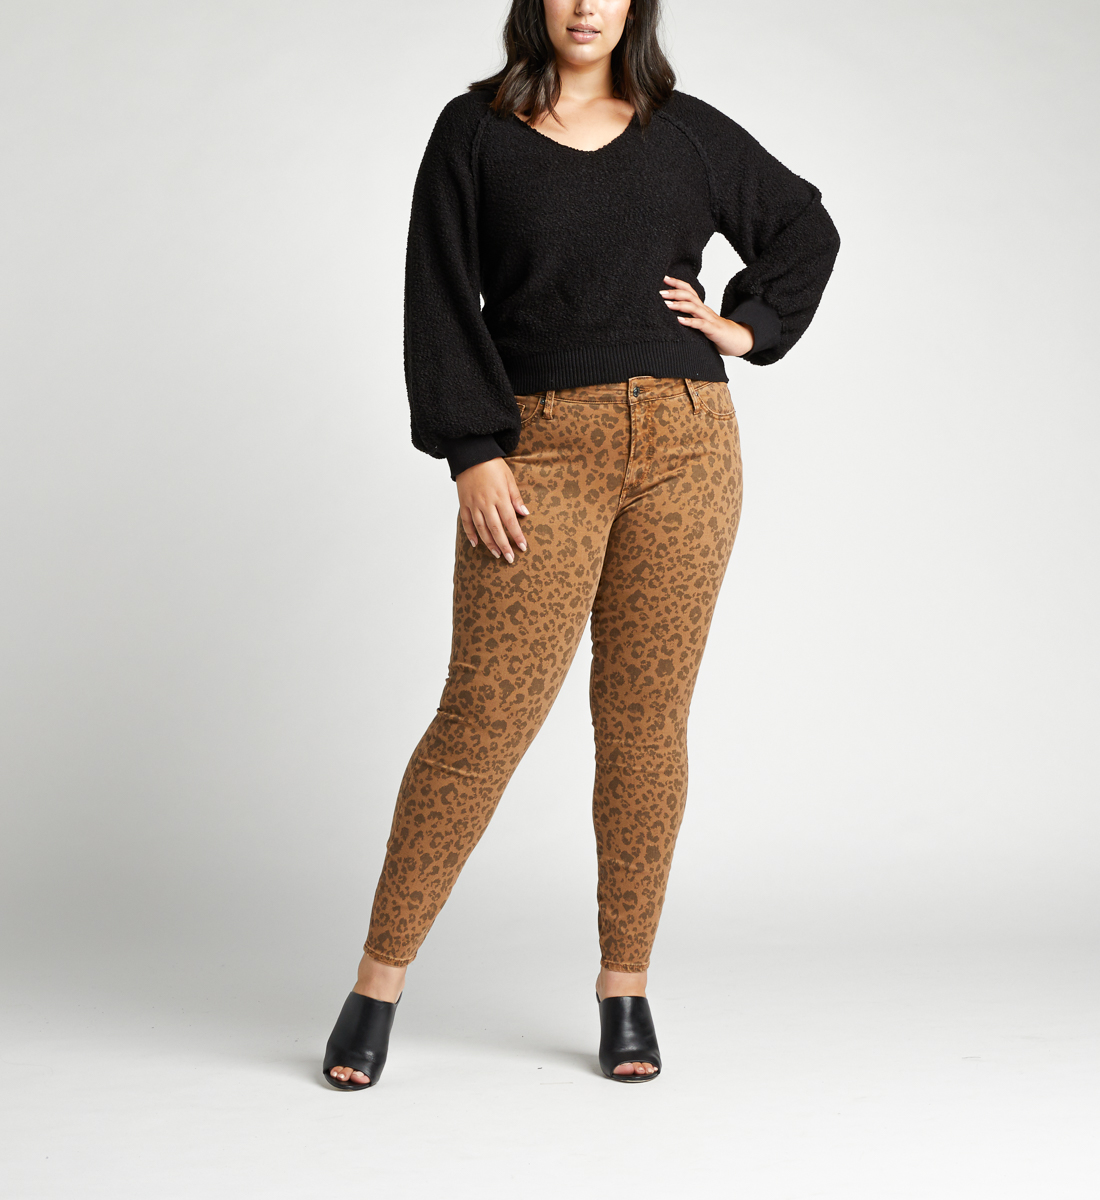 Most Wanted Mid Rise Skinny Plus Size Jeans,Tan Alt Image 1